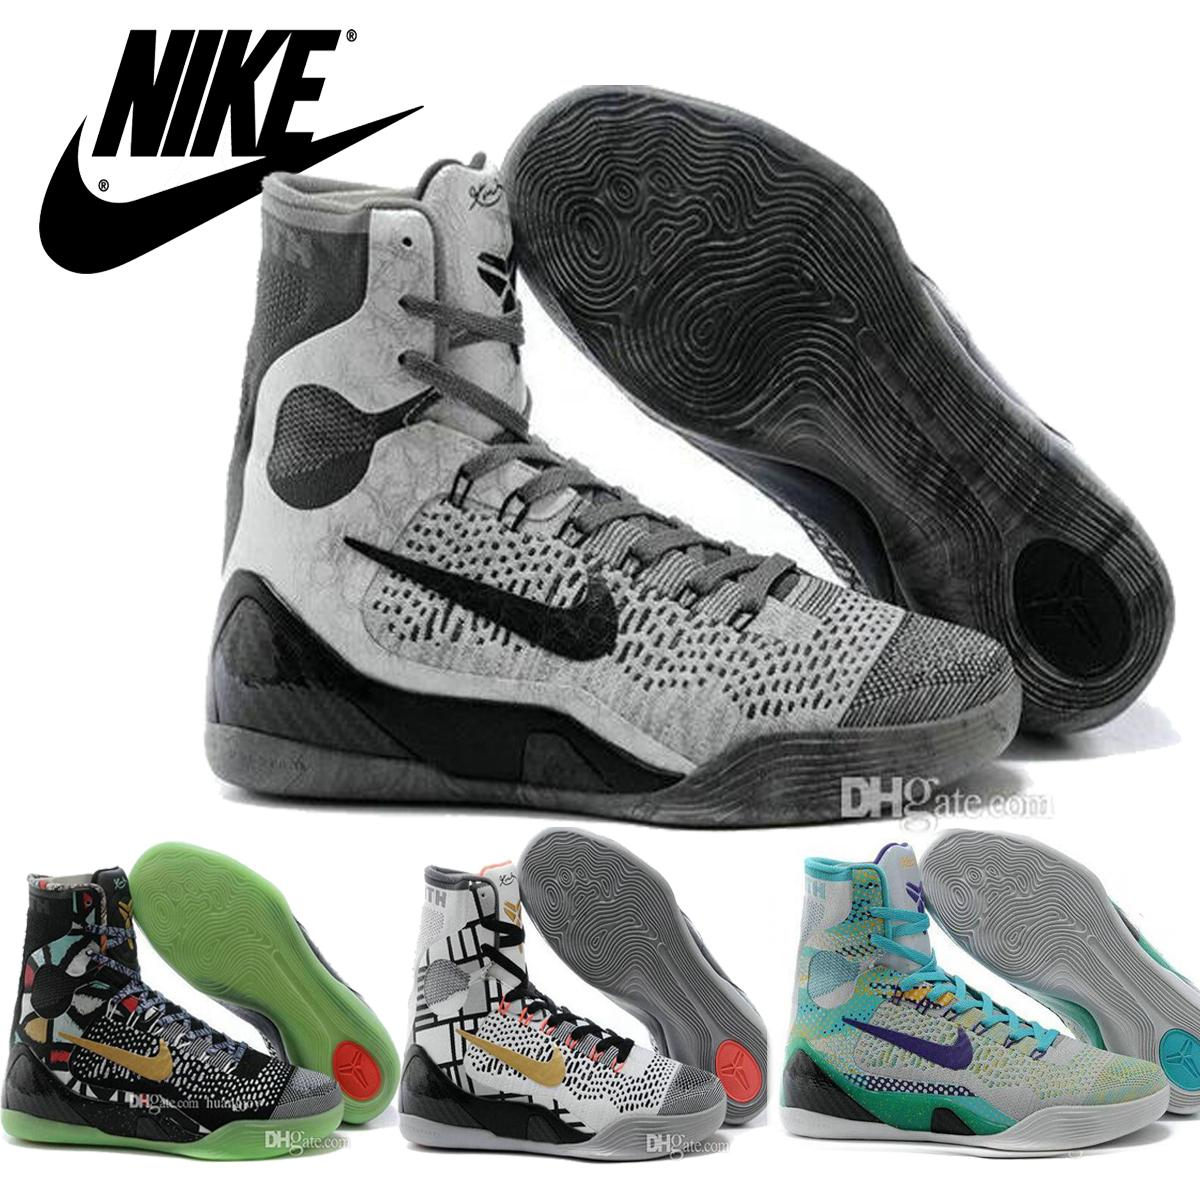 100% authentic 7842d 9ba8b ... coupon for 2016 nike kobe 9 elite perspective mens hight cut basketball  shoes wholesale cheap original